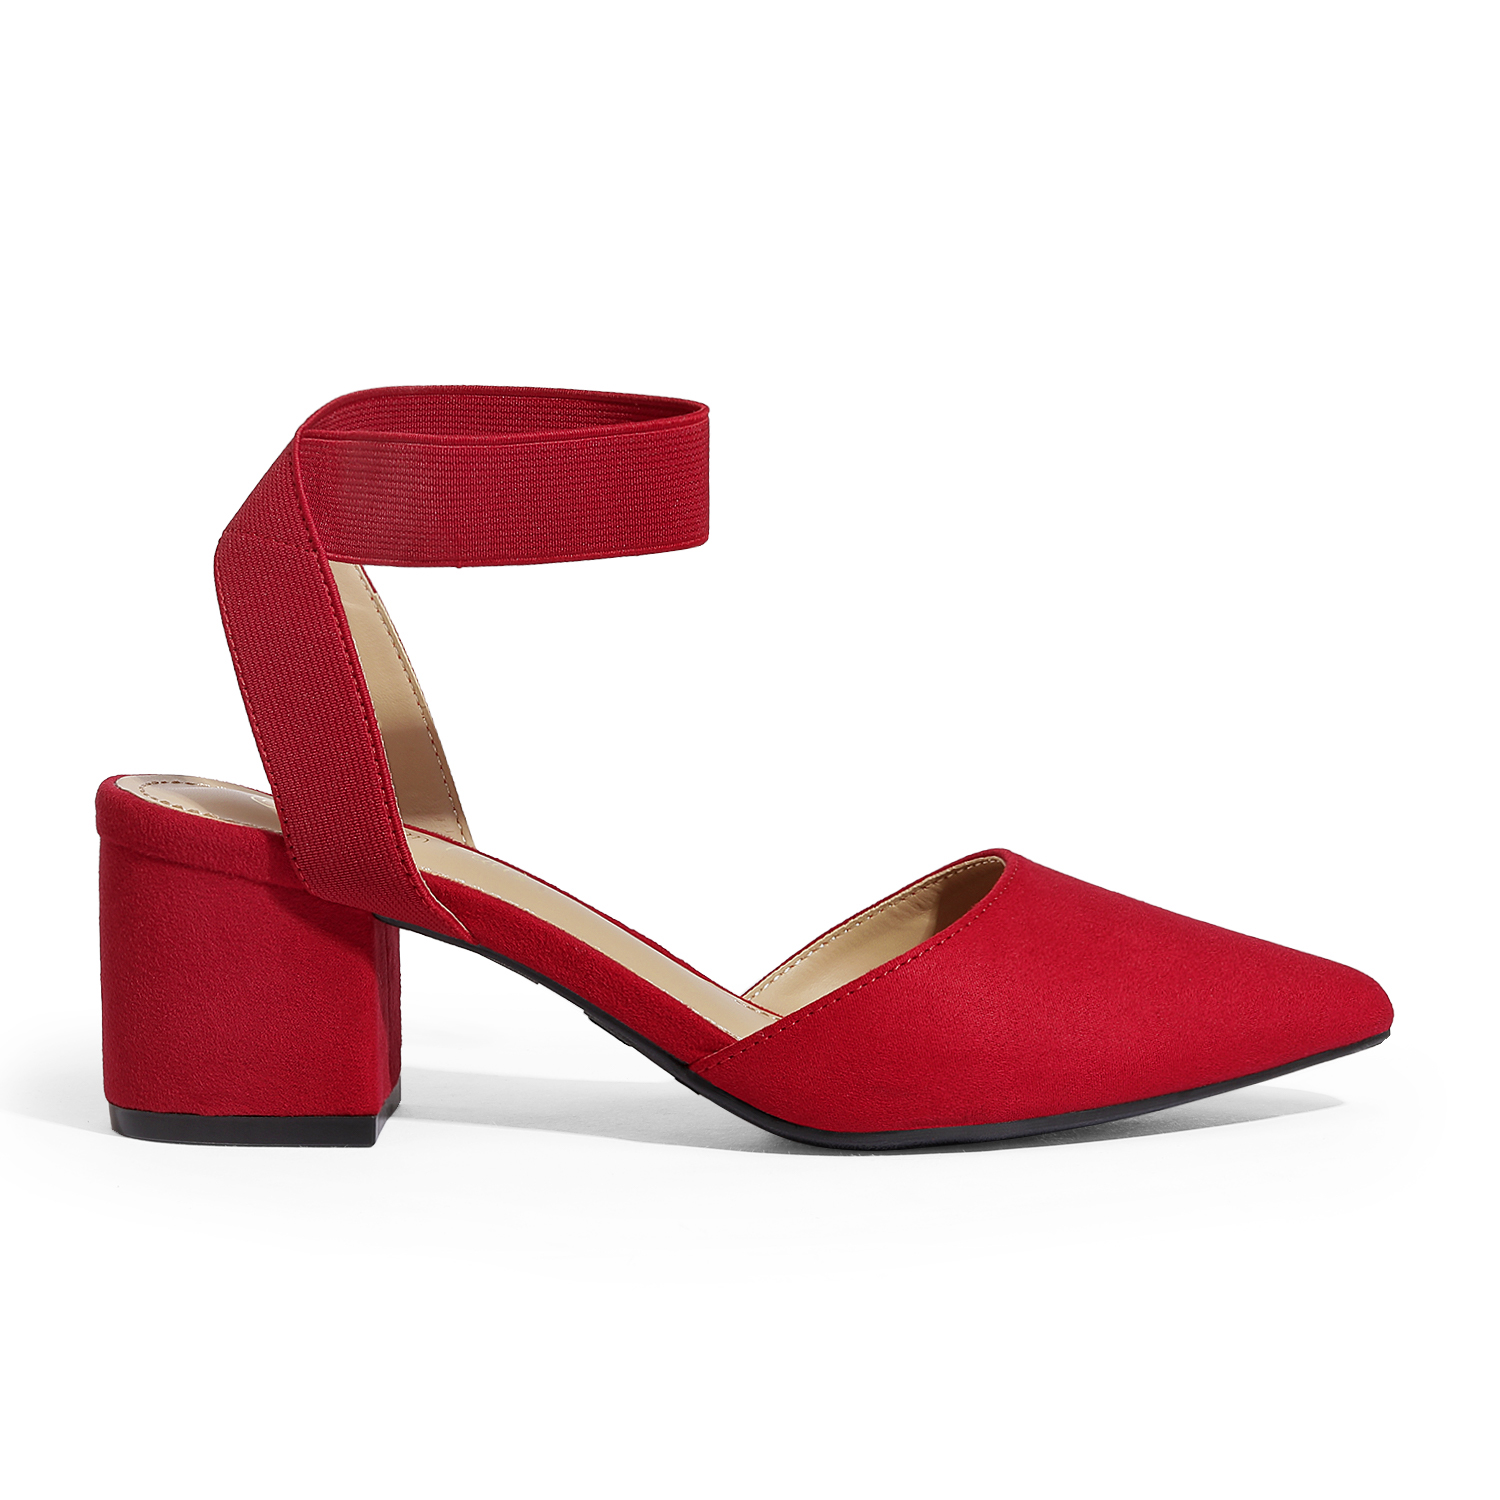 thumbnail 58 - Women-039-s-Elastic-Ankle-Strap-Pointed-Toe-Pump-Shoes-Low-Chunky-Heel-Dress-Pumps